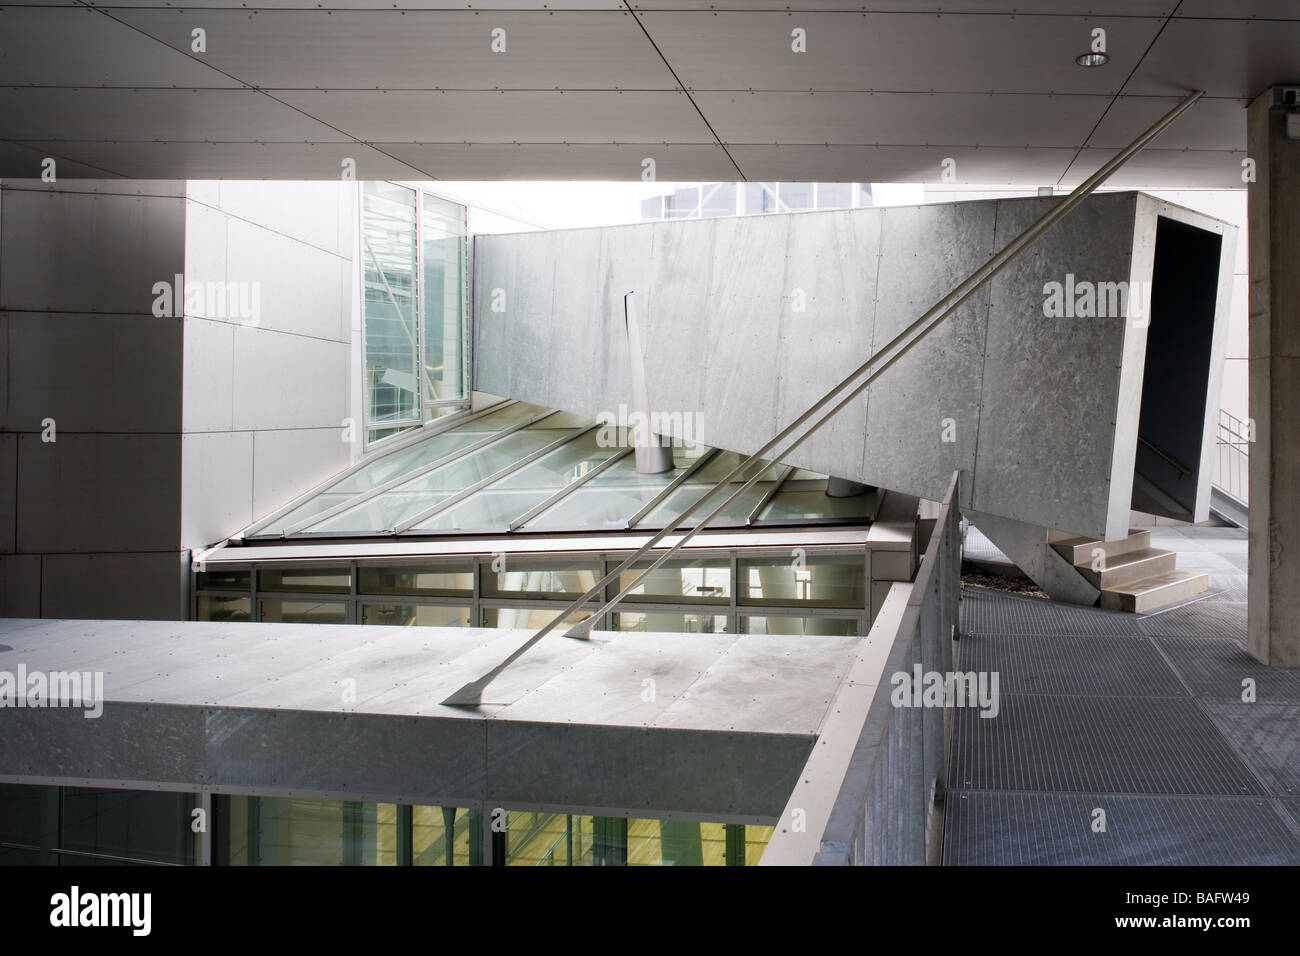 Academia of Fine Arts, Munich, Germany, Coop Himmelb(l)au, Academia of fine arts tunnel to the terrace with atrium - Stock Image